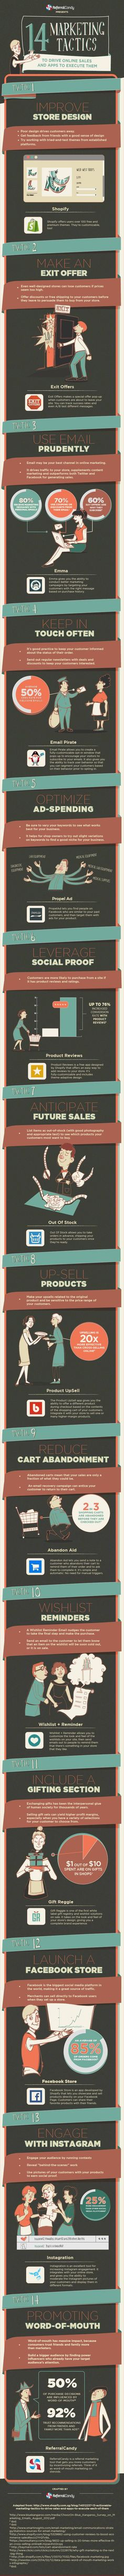 14 Actionable Marketing Tactics to Drive Sales (And Apps to Execute Each of Them) - #infographic #marketing